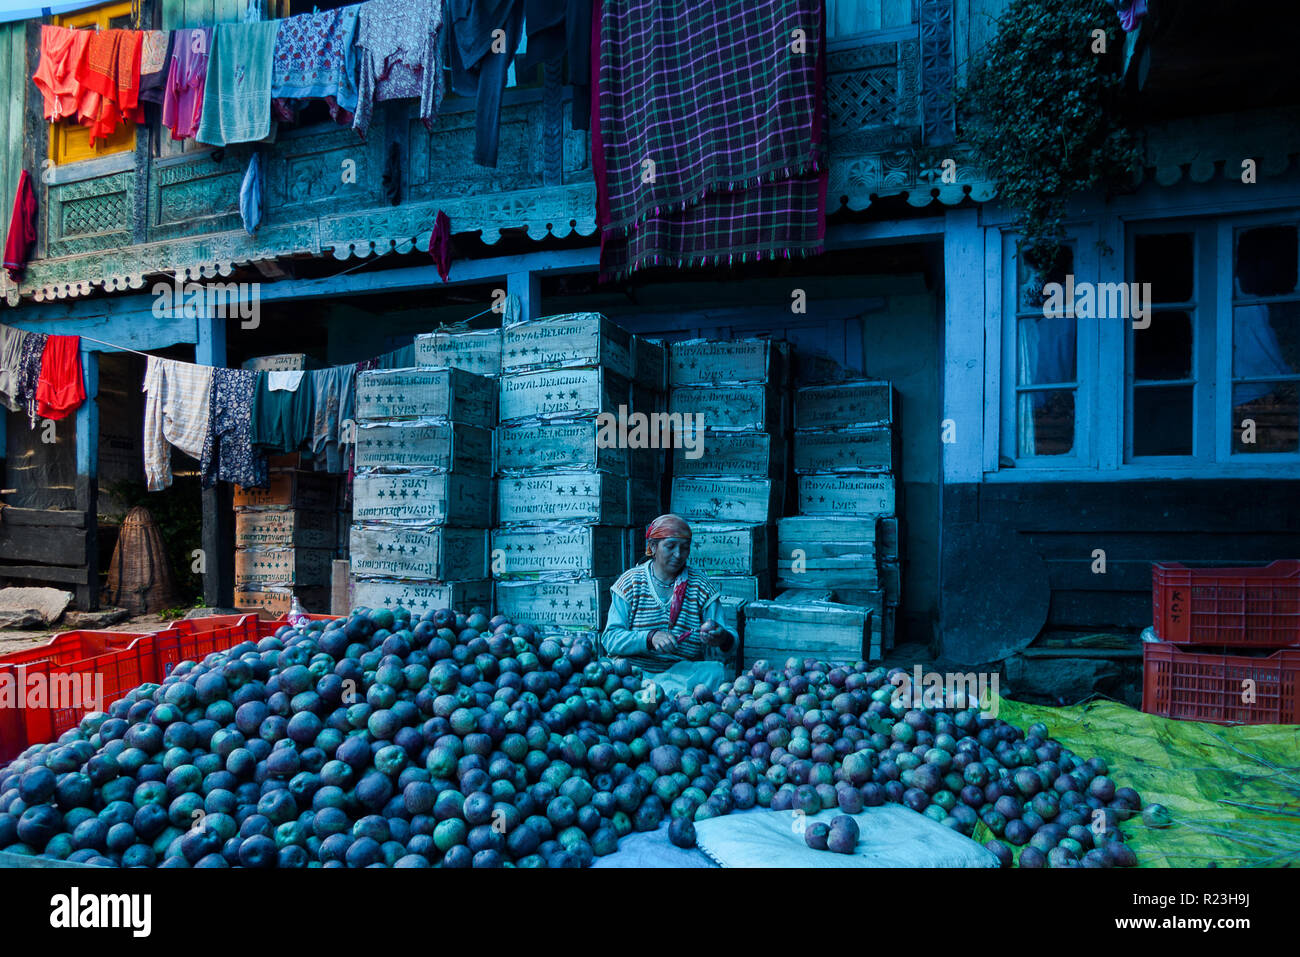 India, Himachal Pradesh, Vashist, 08/11/2010: apple warehouse and local worker preparing apples.The blue light of the photo depends on the reflection  - Stock Image